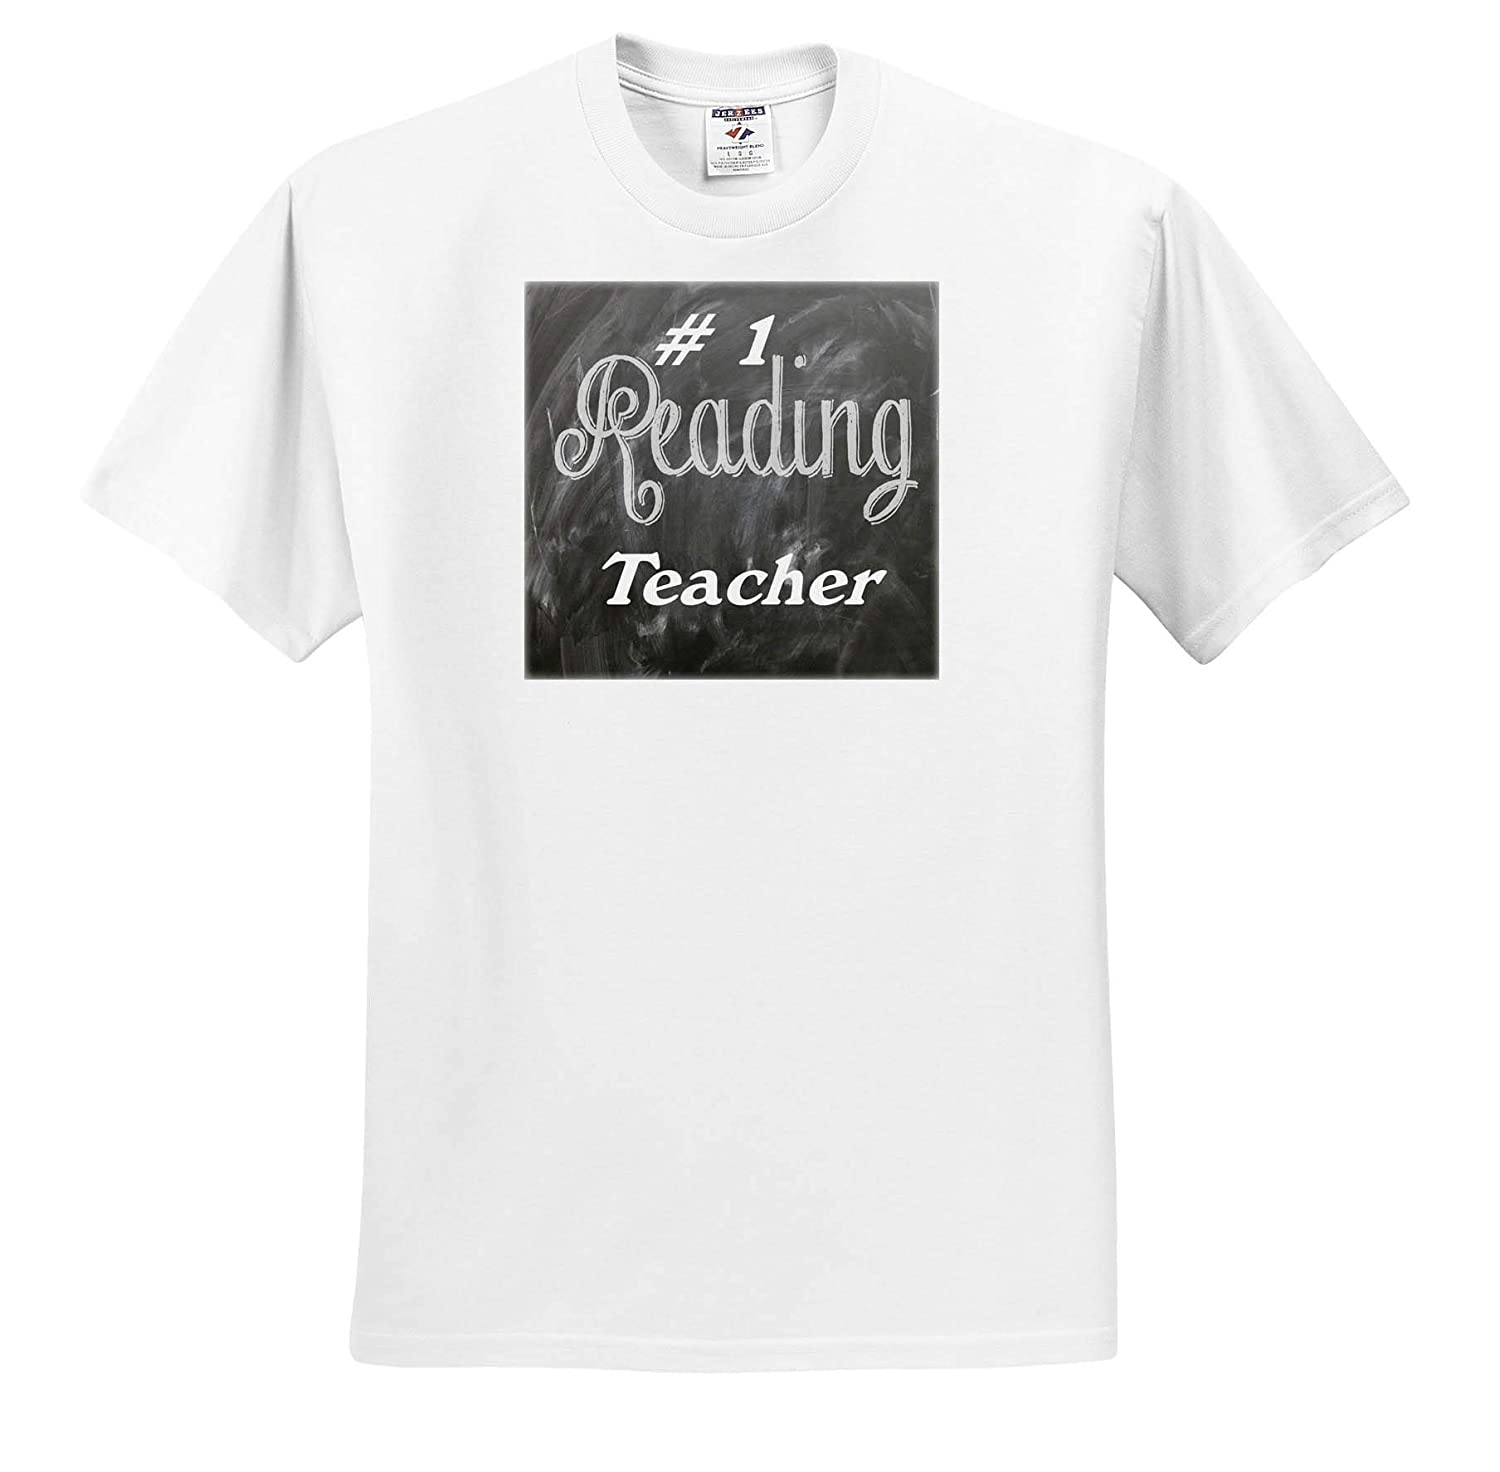 Image of Words Number 1 Reading Teacher On Blackboard ts/_316554 Adult T-Shirt XL 3dRose Lens Art by Florene